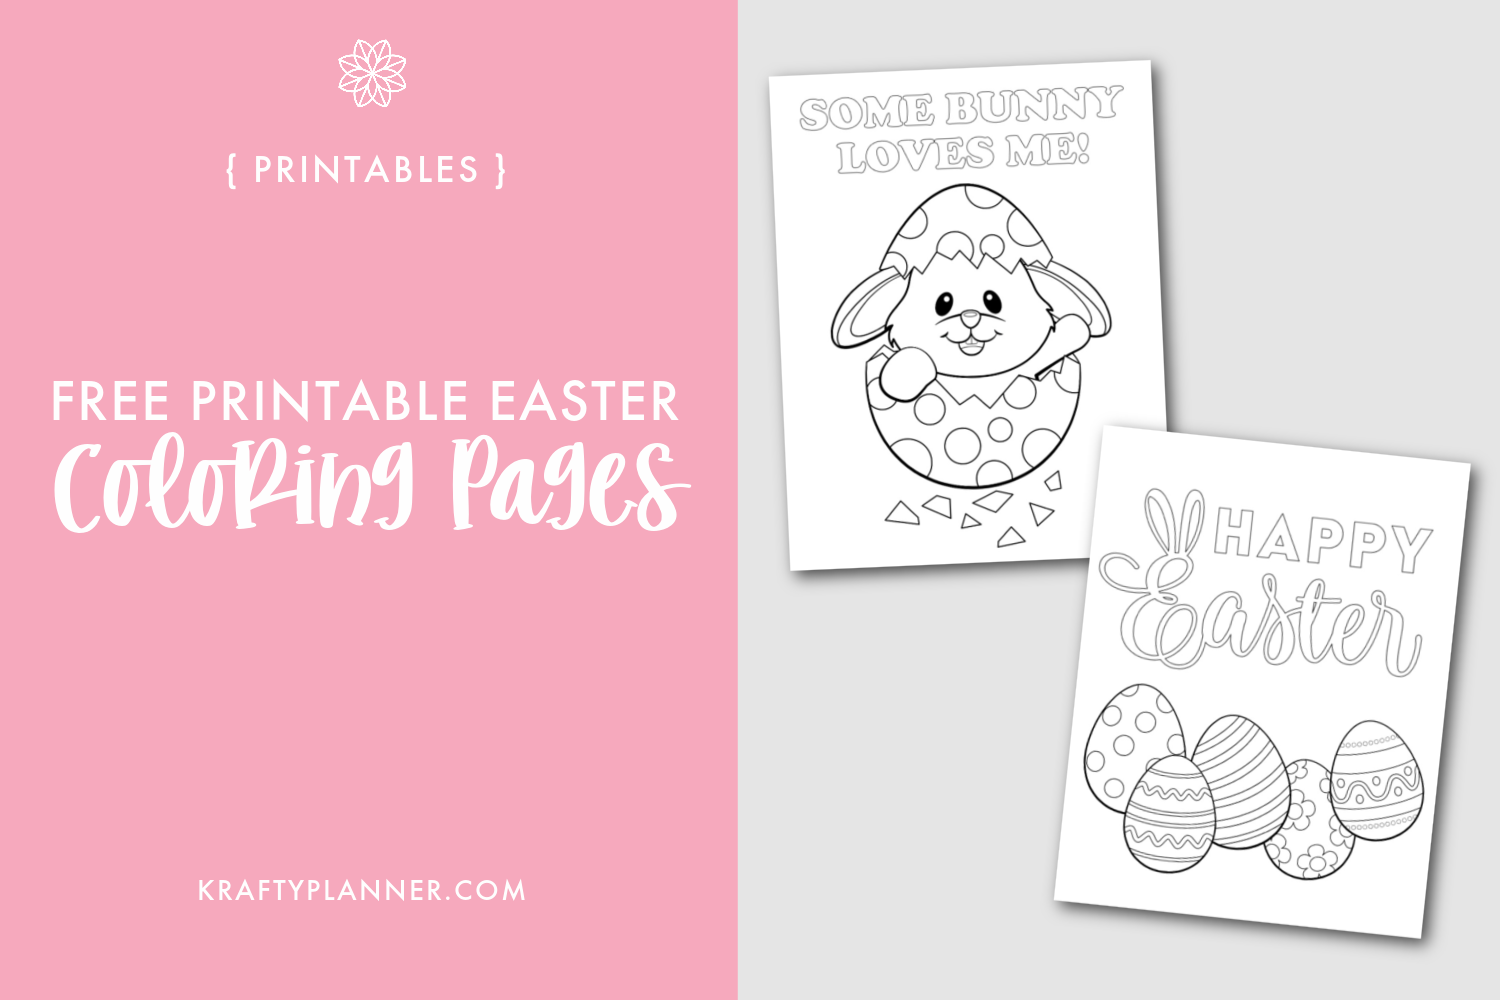 Easter Coloring Pages Main Image.png